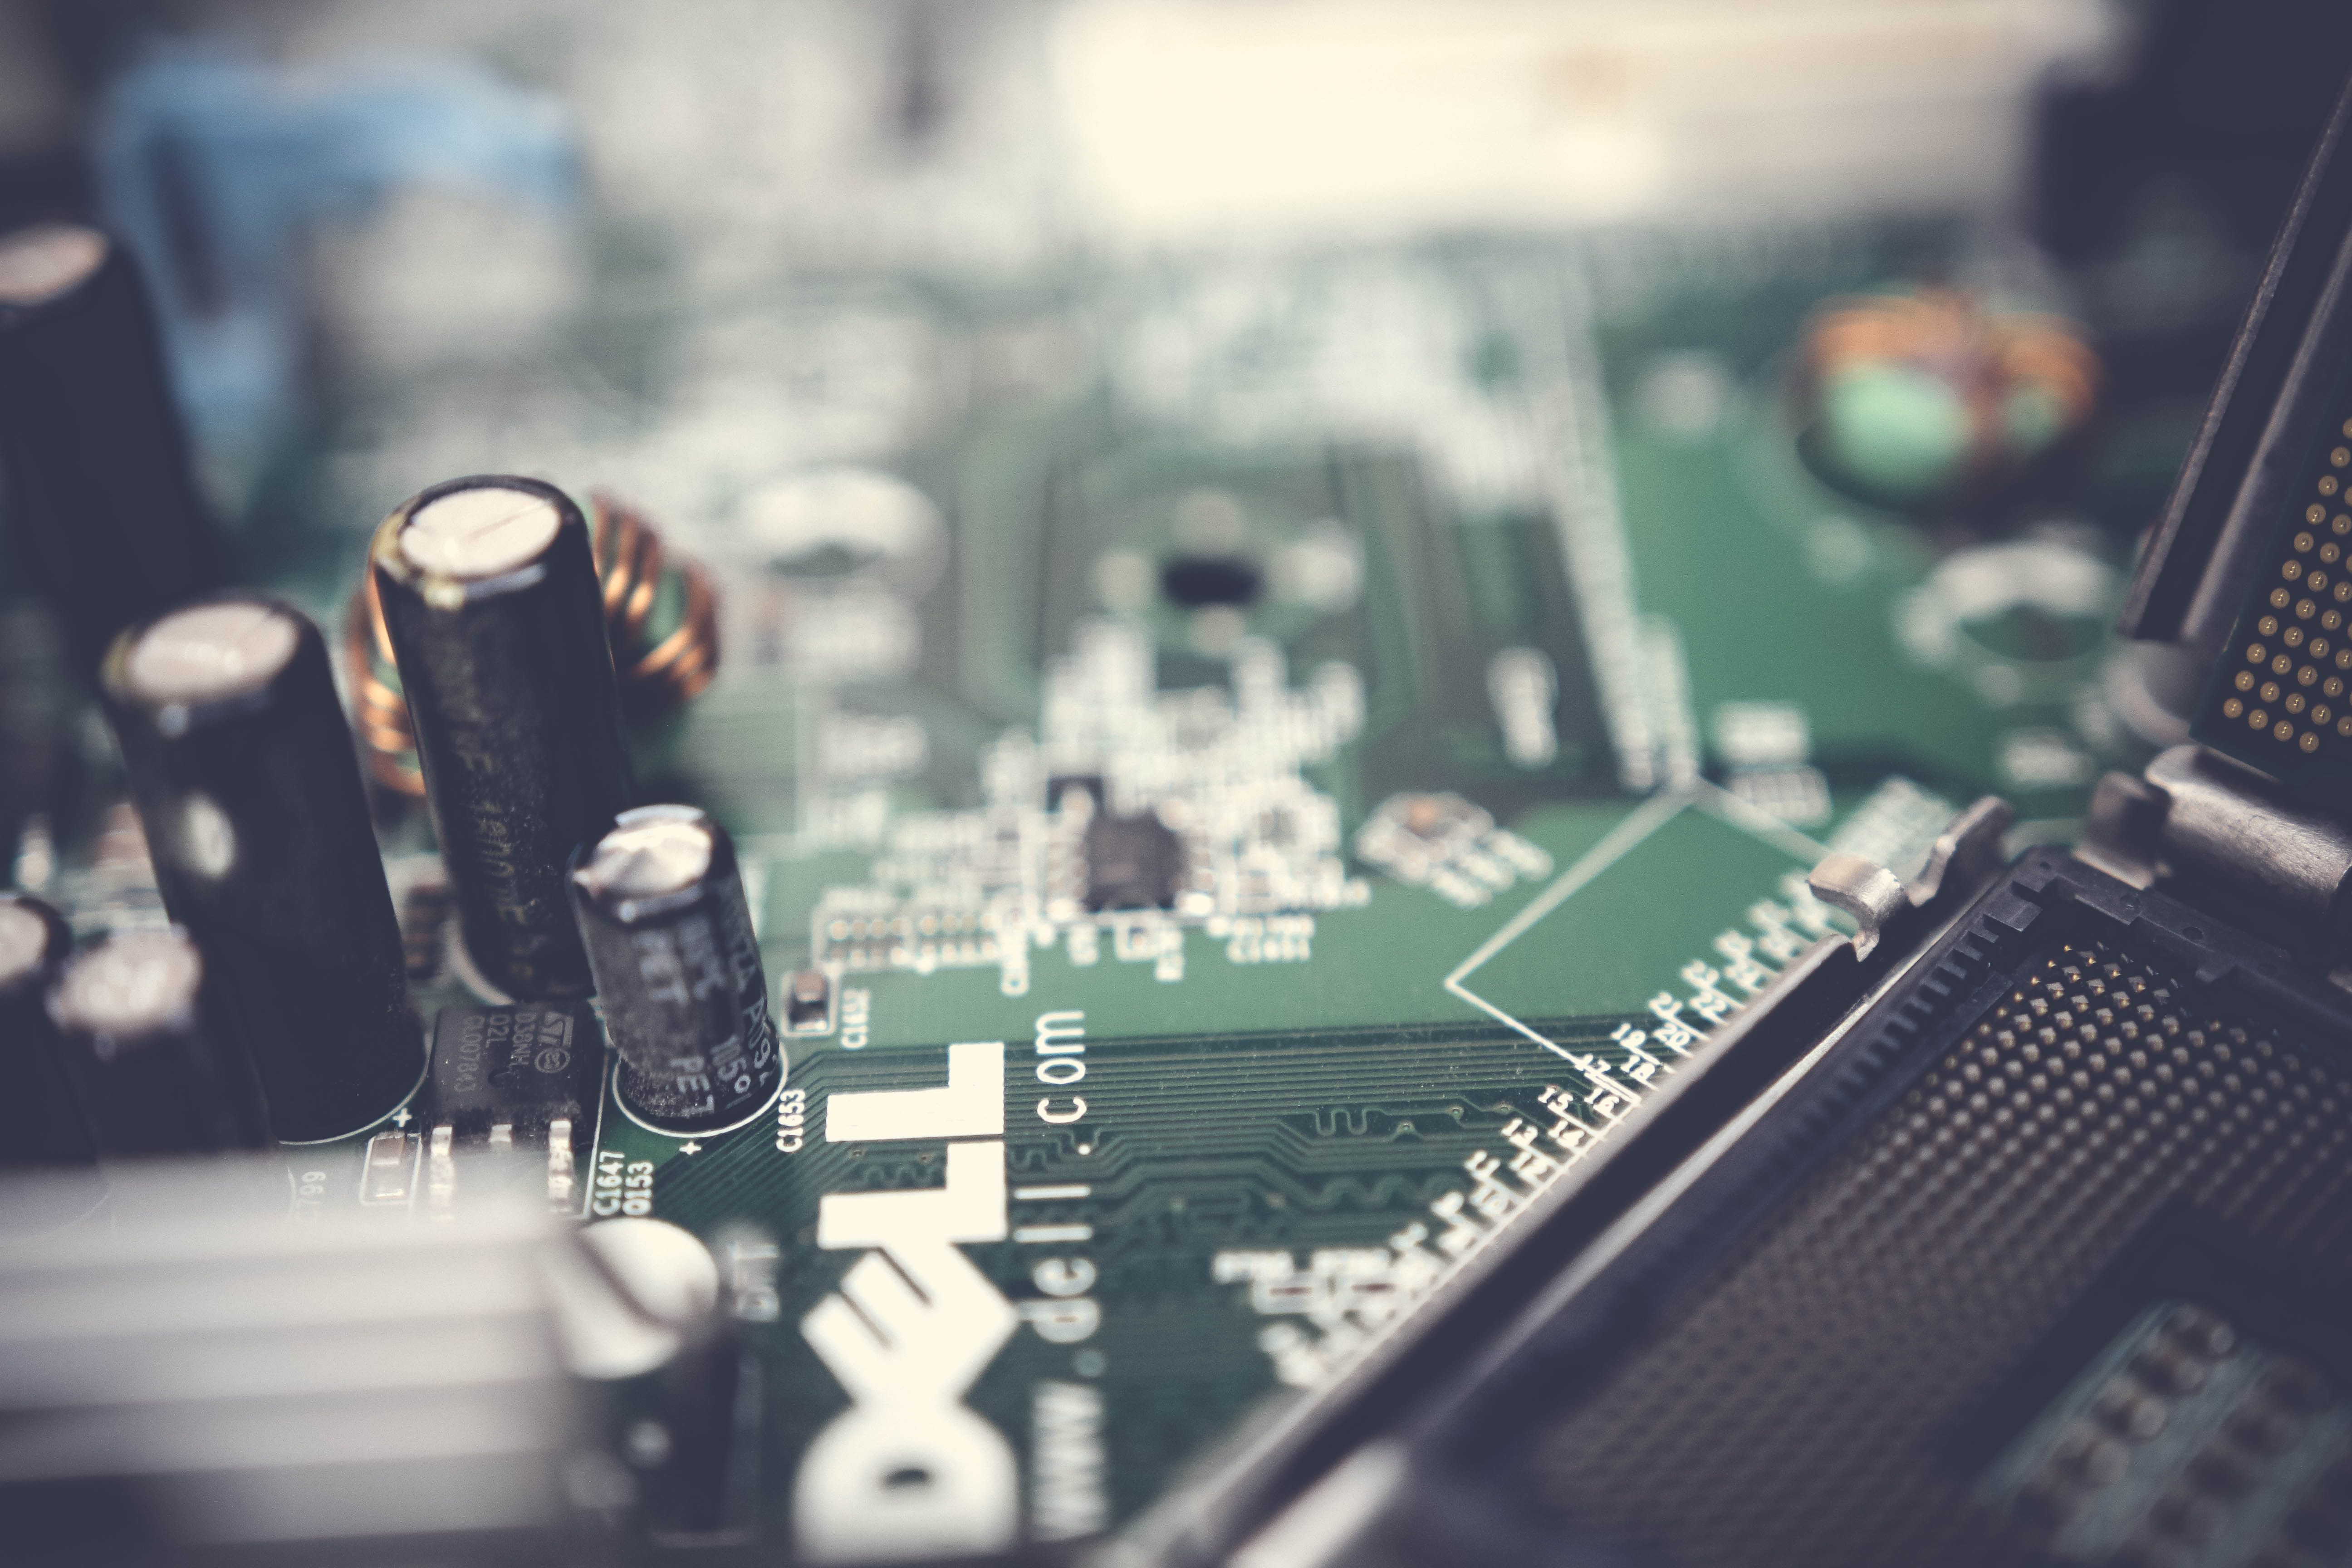 Closed Up Photo of Green Dell Circuit Board